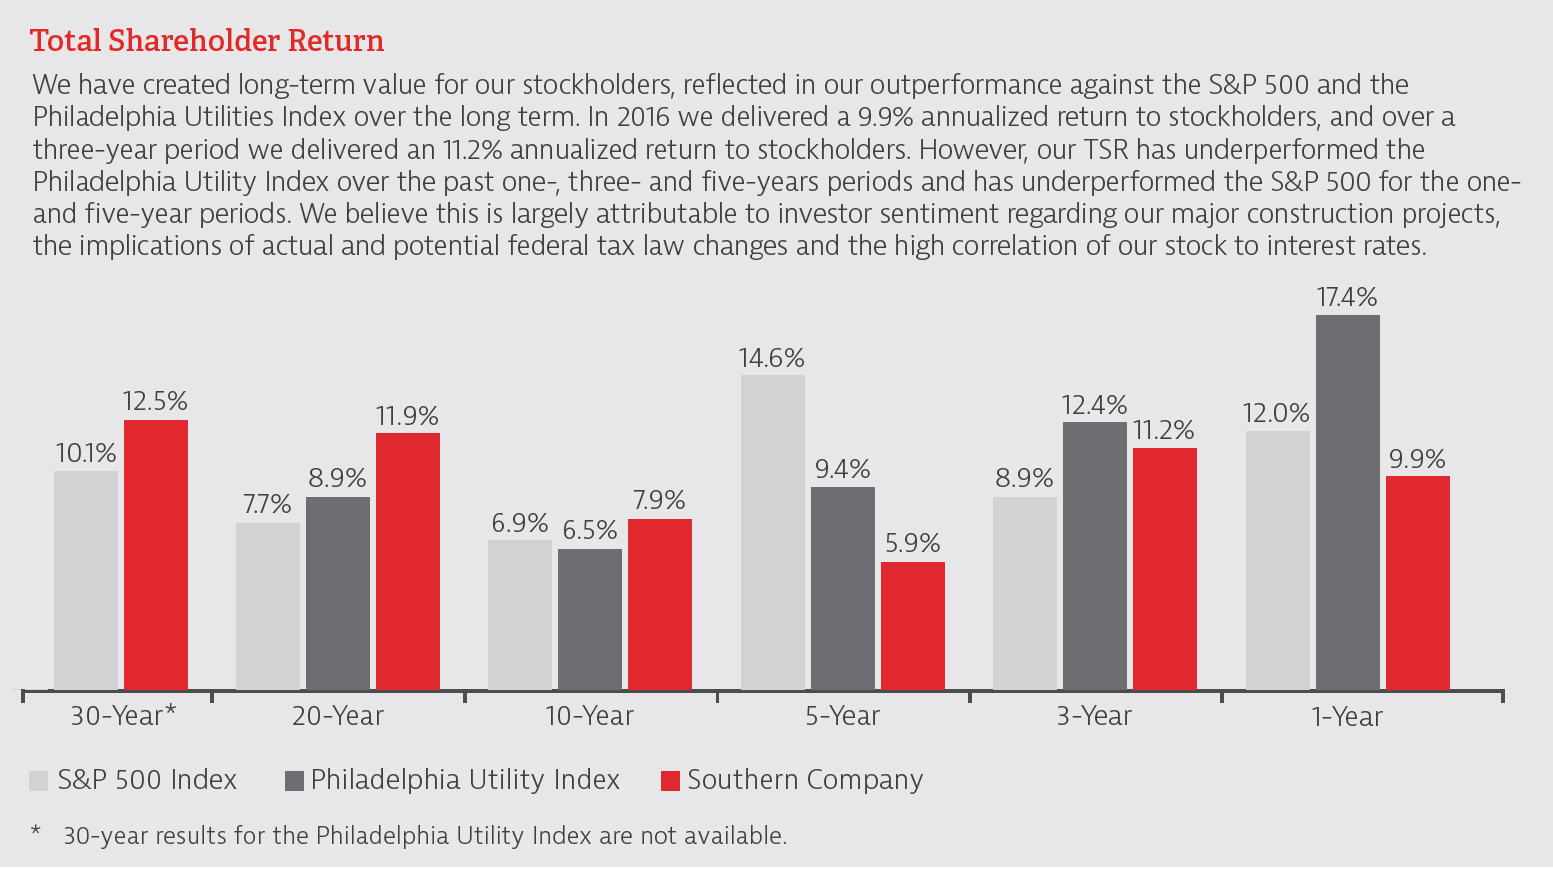 Total Shareholder Return